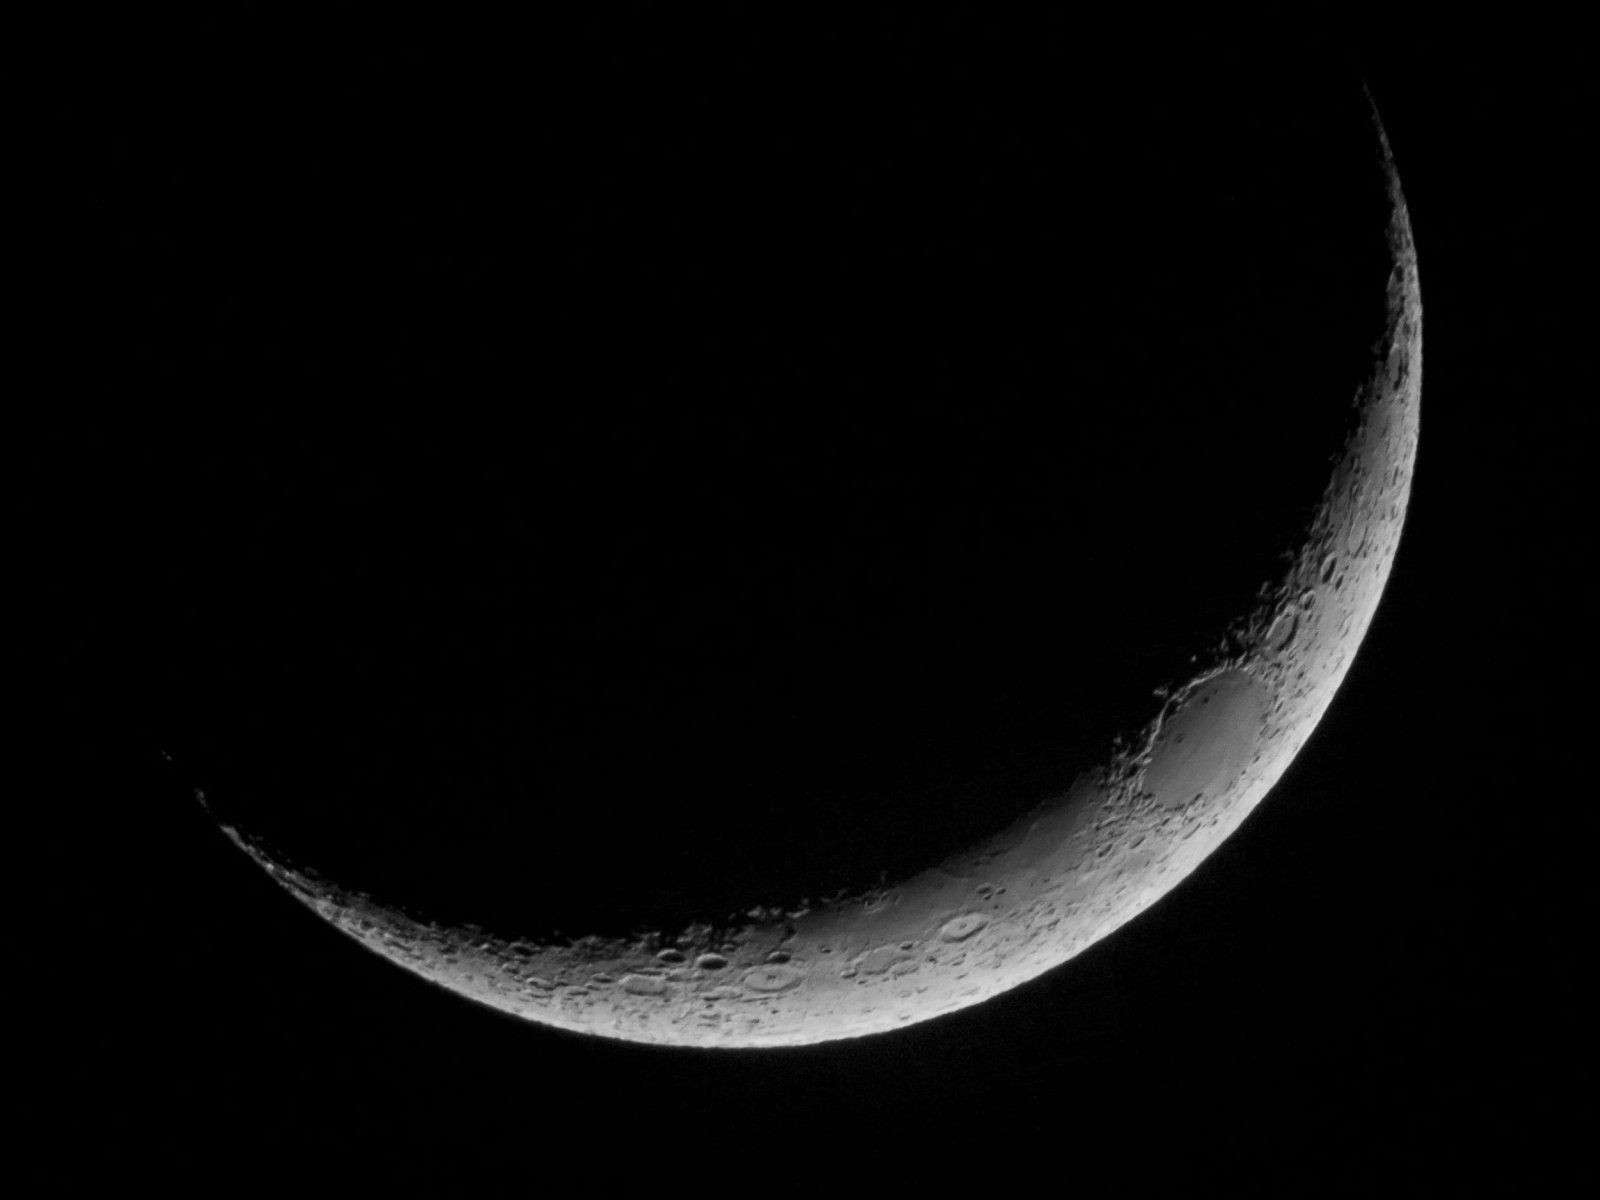 Crescent Moon Wallpaper Hd Wallpapers In Space Imagesci Com New